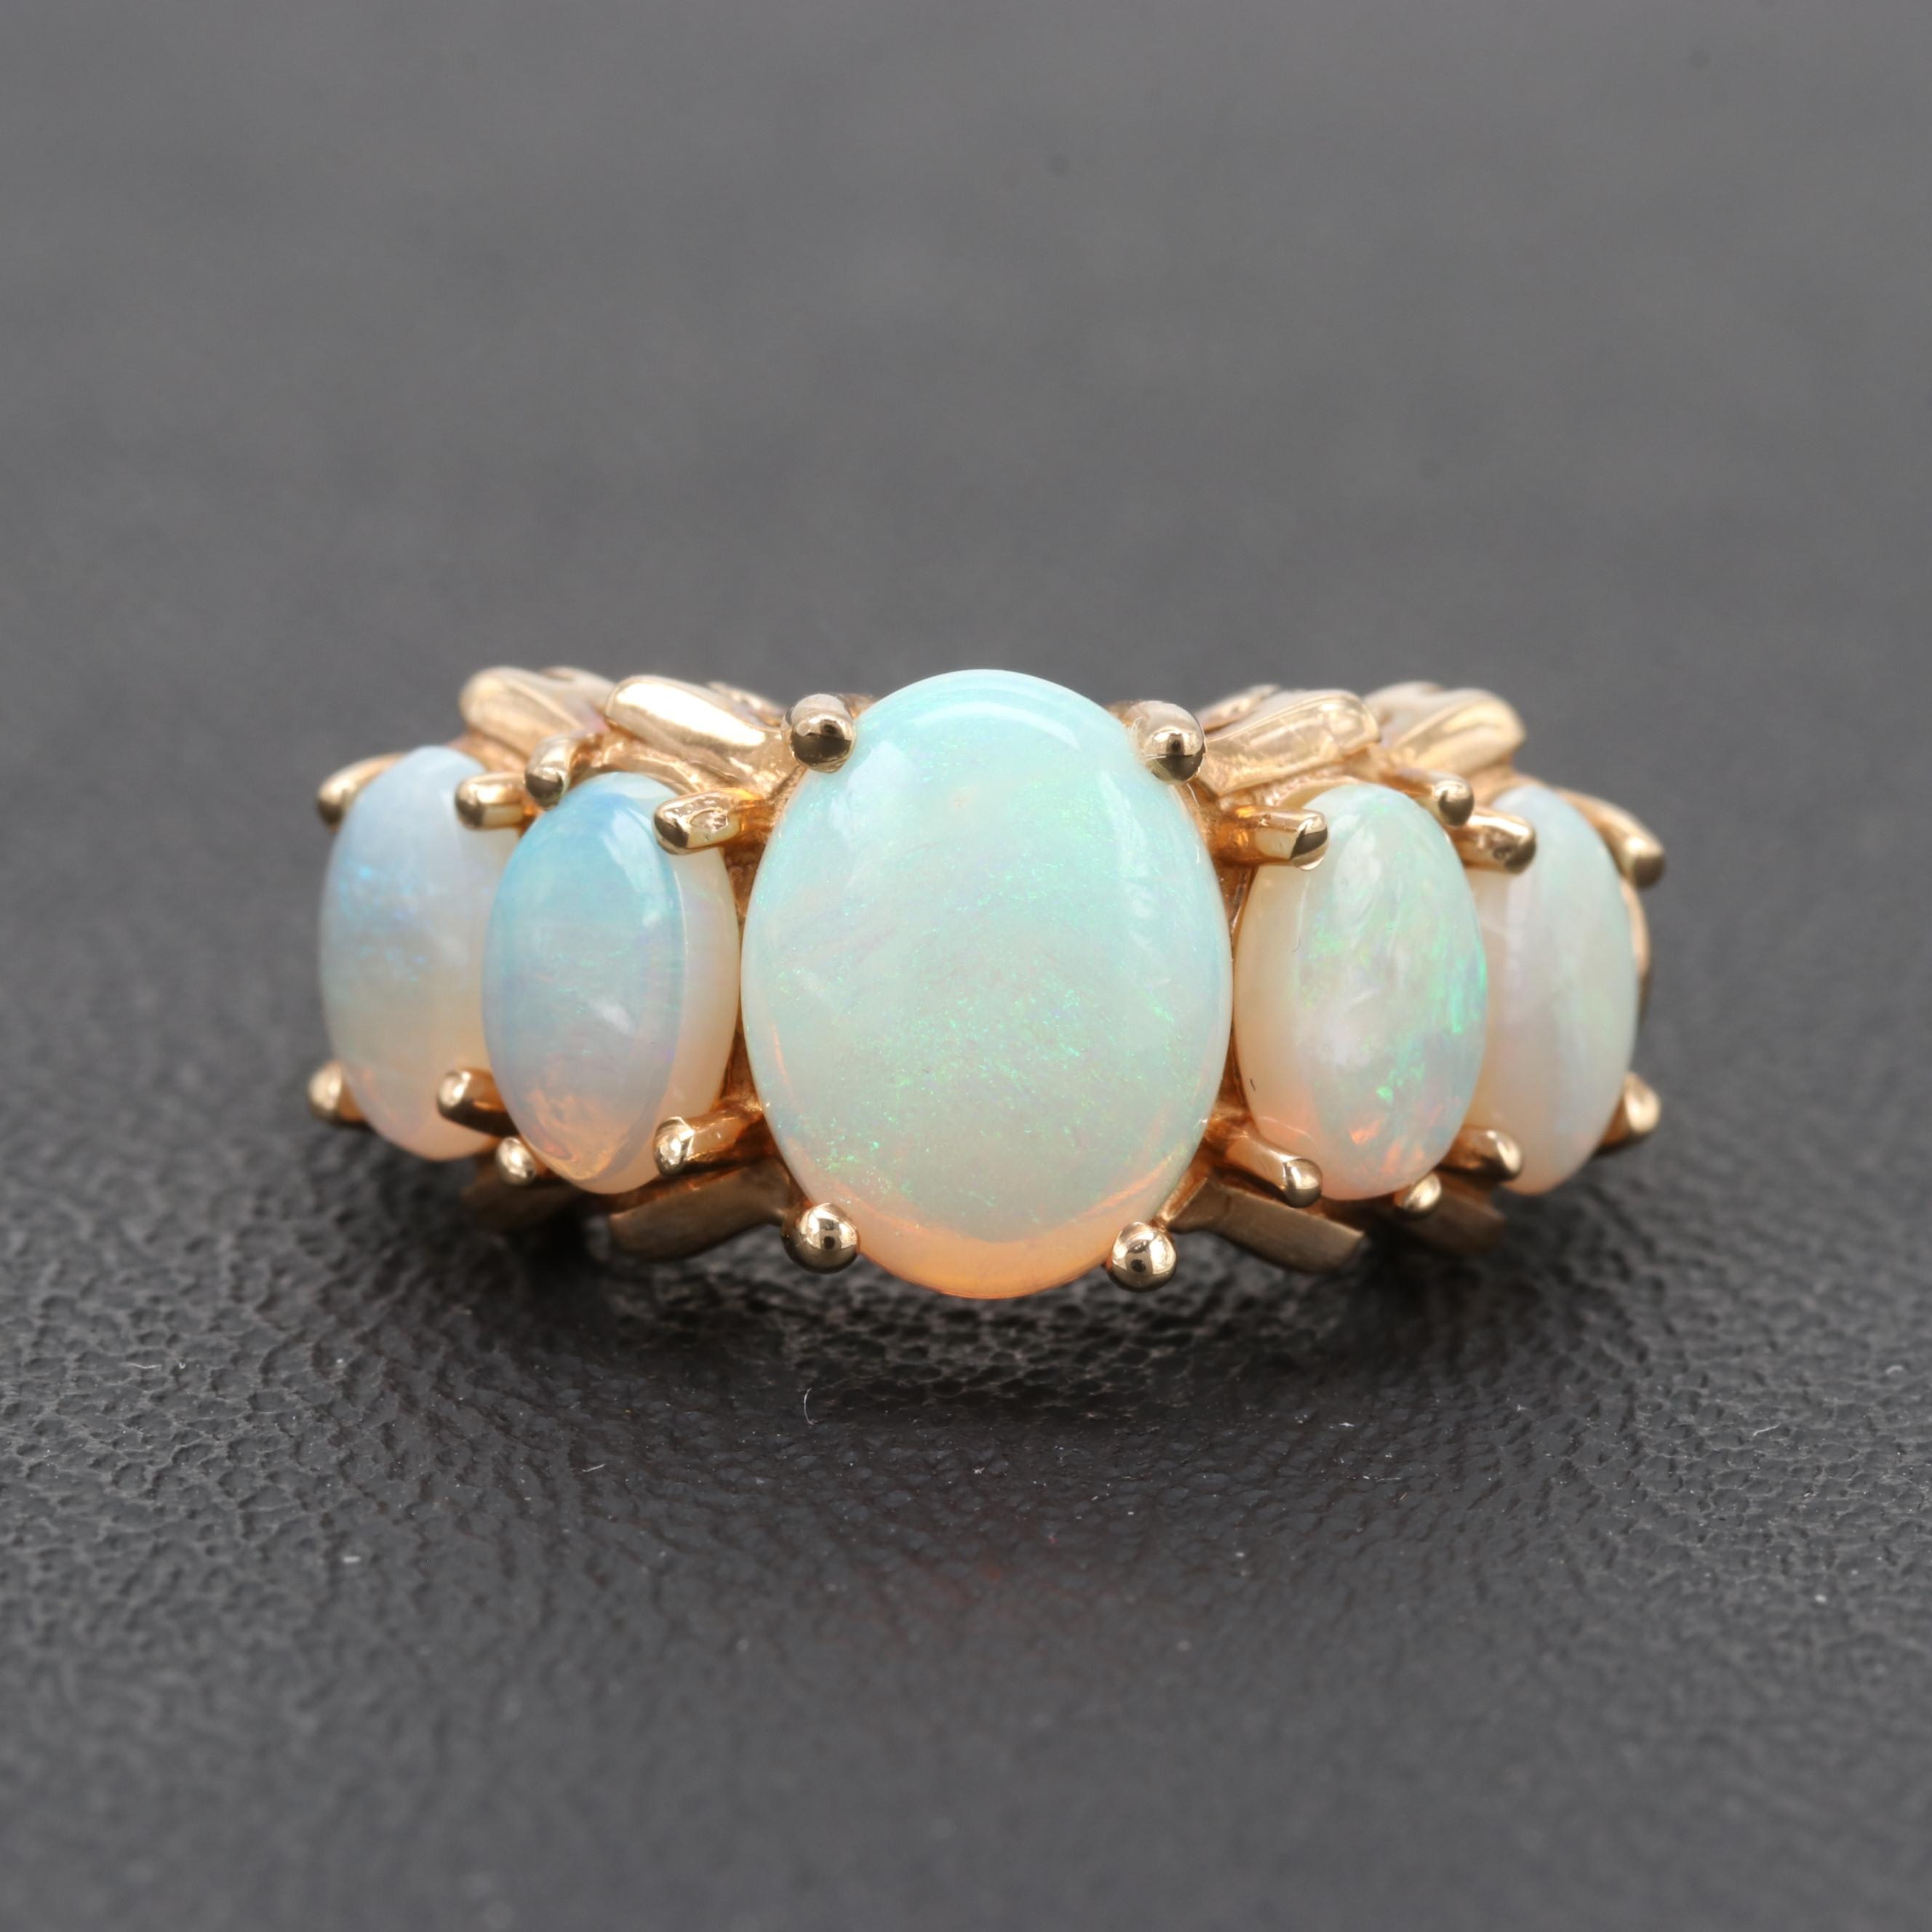 10K Yellow Gold Opal Ring